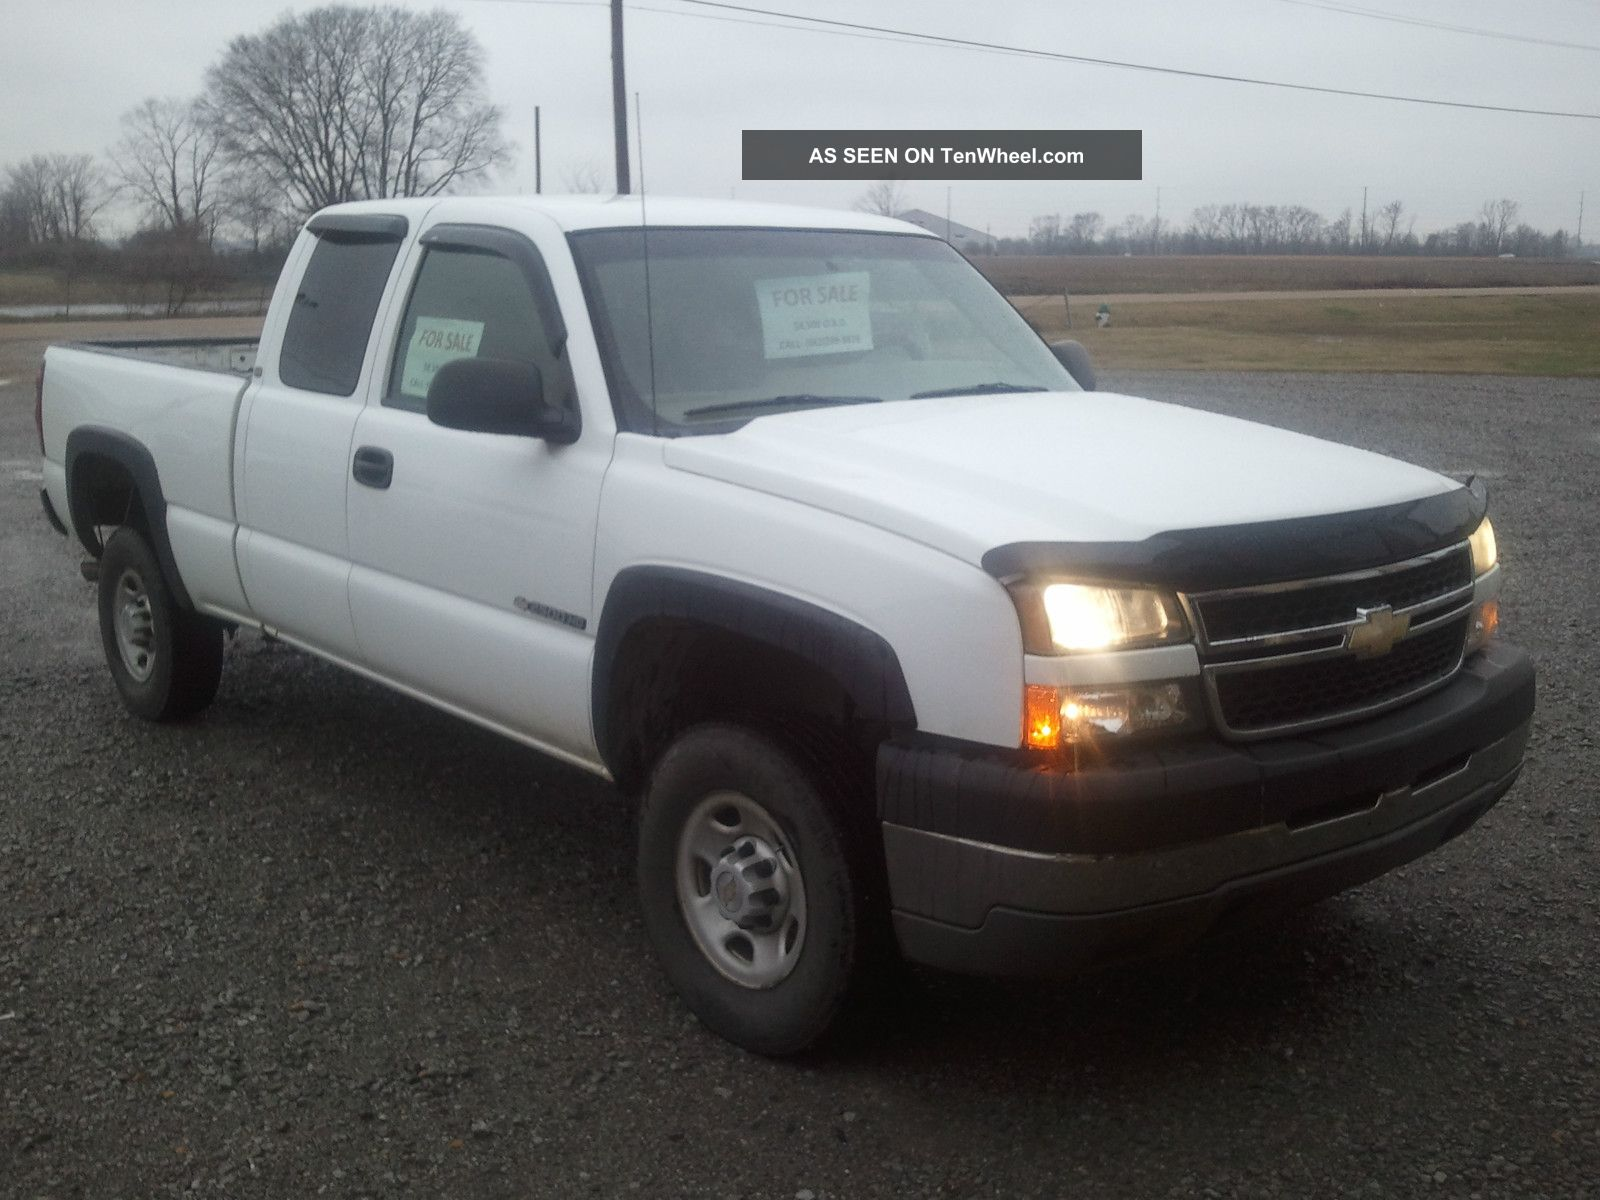 2005 Chevrolet 2500hd Exented Cab Pickup,  White,  6.  0 L V - 8 Silverado 2500 photo